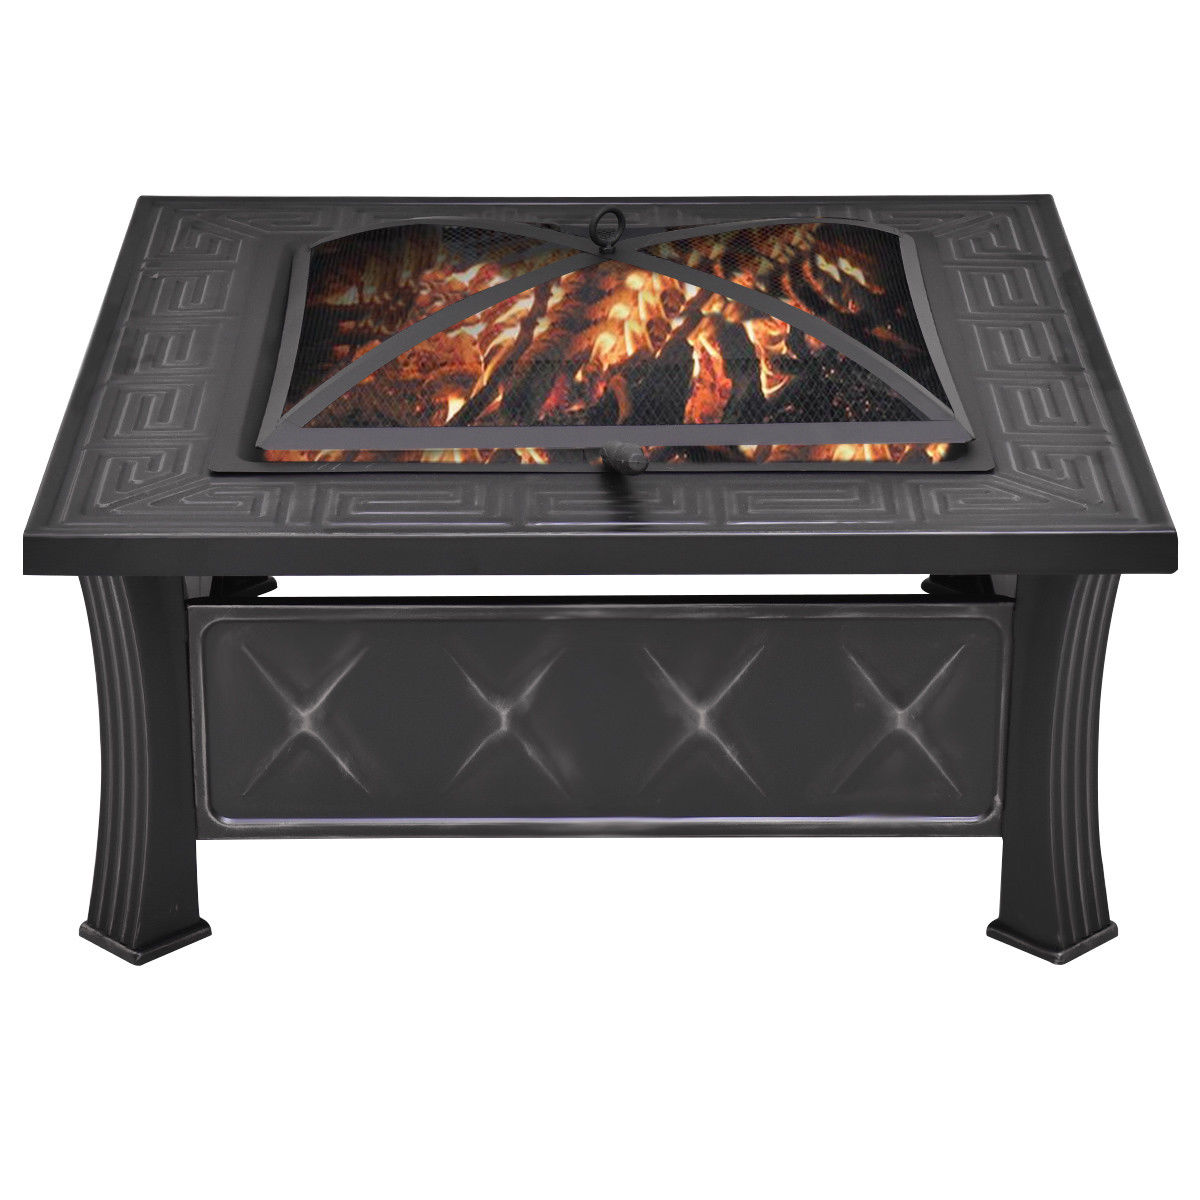 Costway 32'' Square Metal Firepit Patio Garden Stove Firepit Outdoor Brazier With Poker by Costway